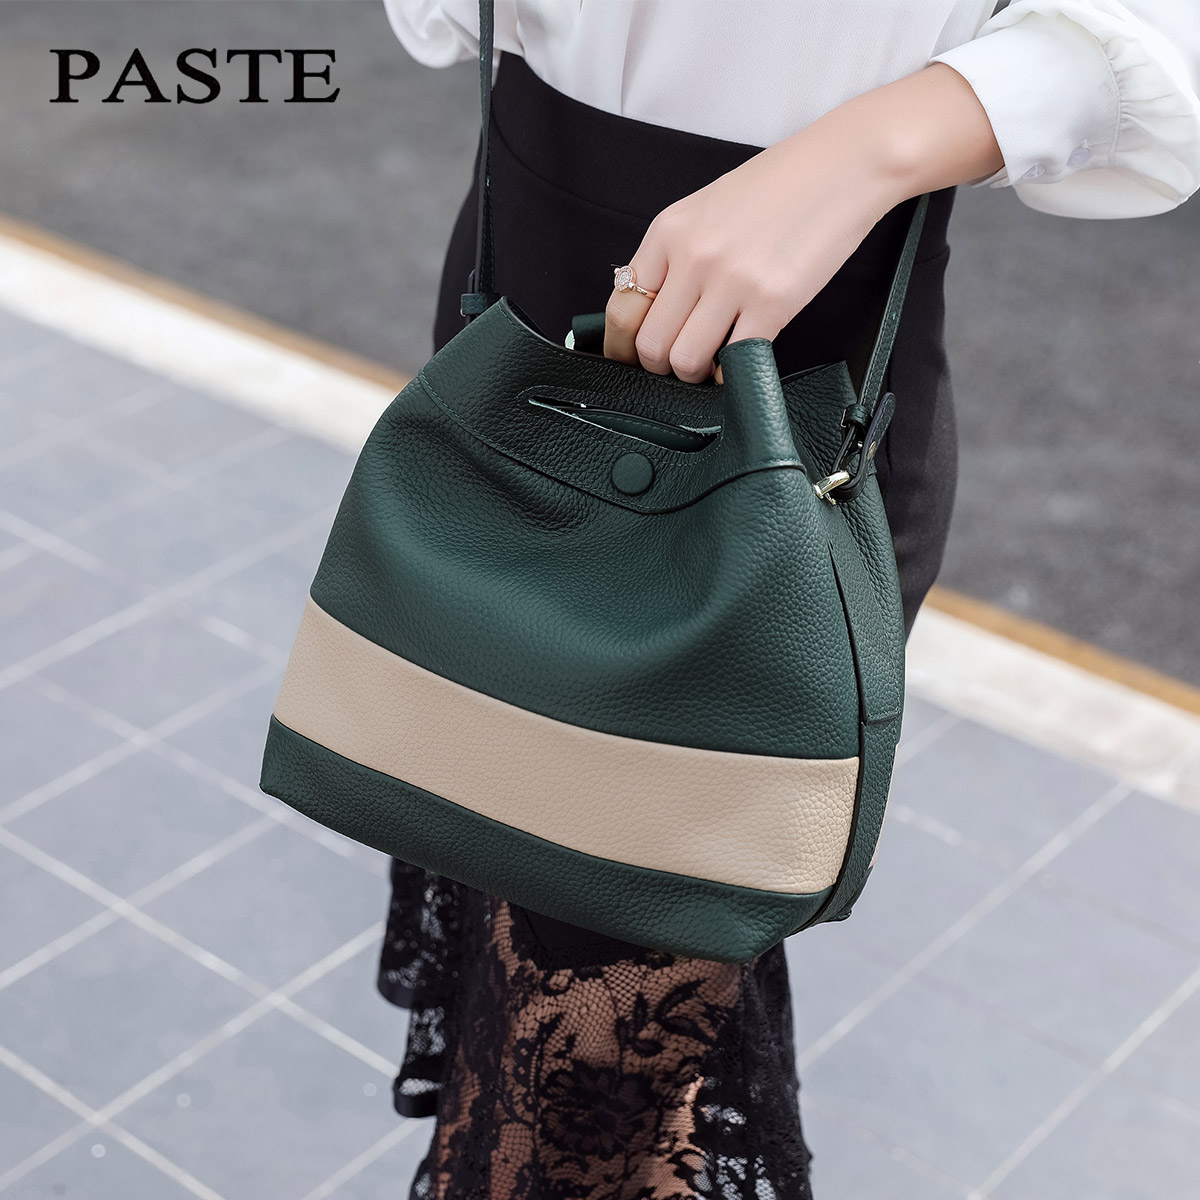 2017 NEW Famous Brand genuine leather bucket bag Luxury Elegant shoulder messenger bags Fashion Panelled color women bags new genuine leather women bag messenger bags casual shoulder bags famous brand fashion designer handbag bucket women totes 2017